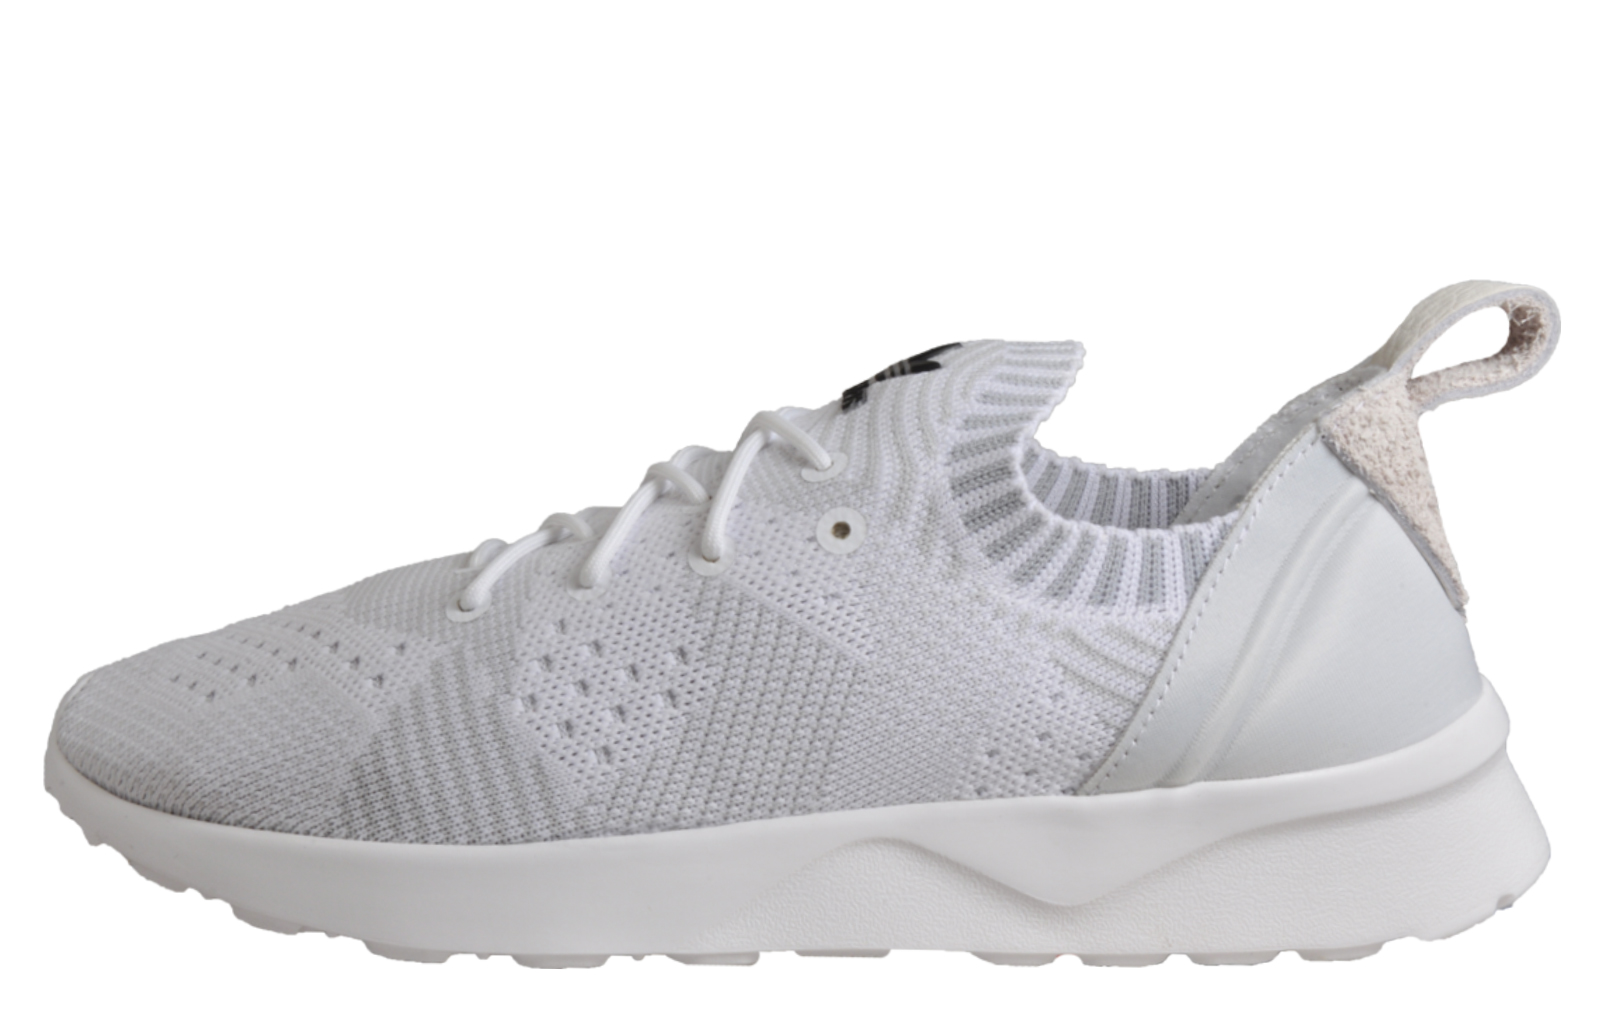 innovative design 70850 f6e51 Adidas Originals ZX Flux ADV Virtue PK Primeknit womens Classic Casual  Fitness Trainers White